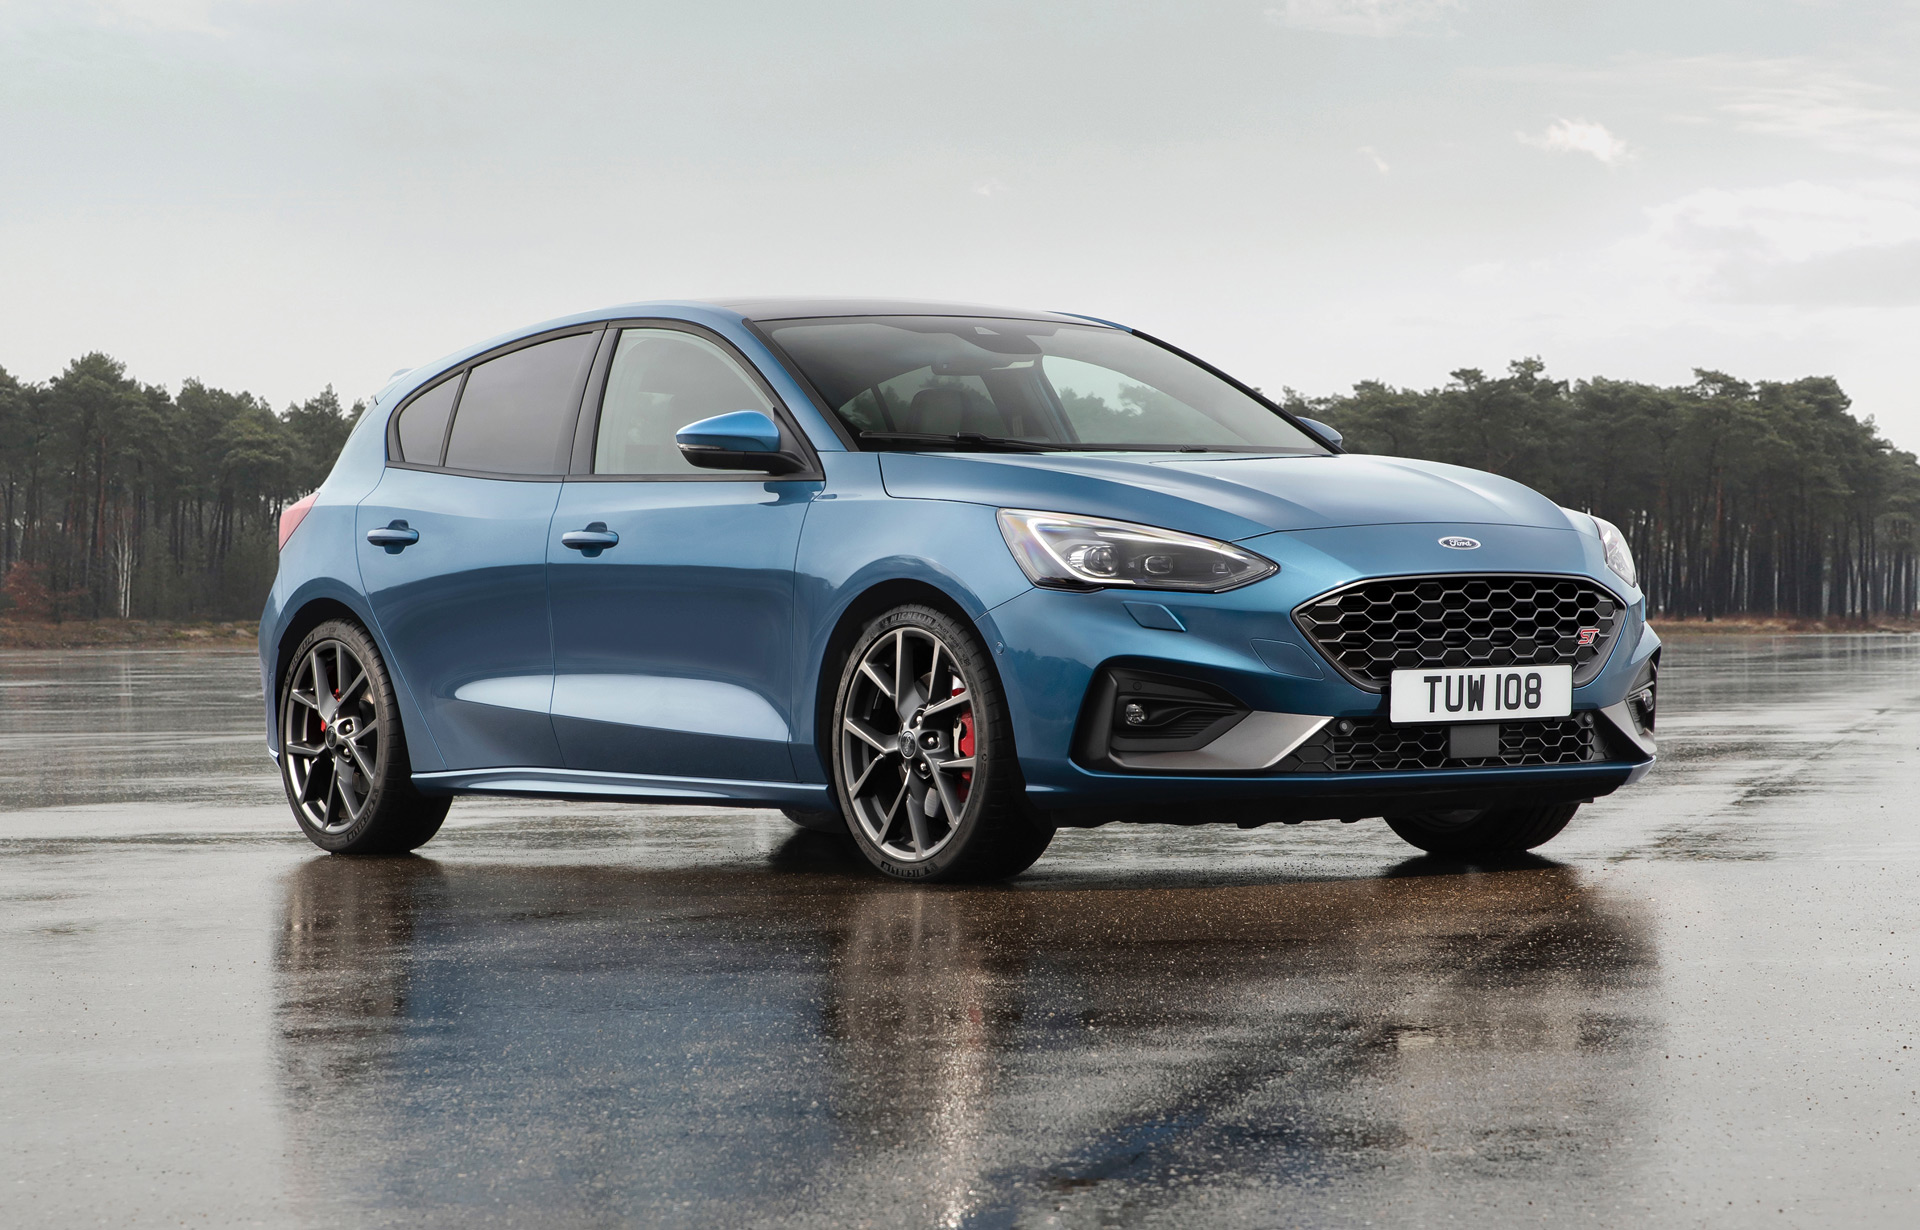 47 The Best 2020 Ford Focus Rs St Interior